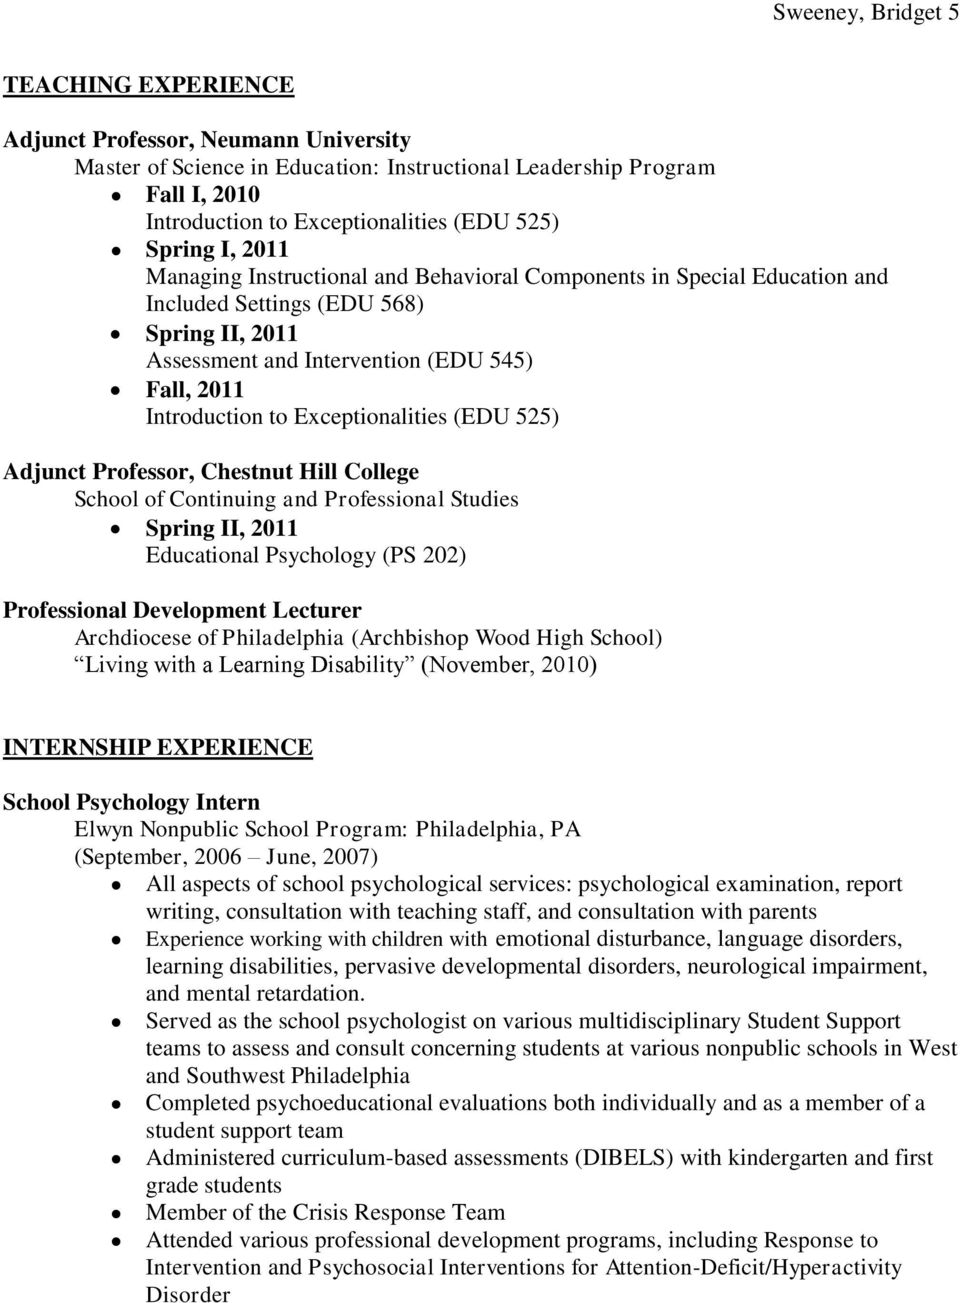 Exceptionalities (EDU 525) Adjunct Professor, Chestnut Hill College School of Continuing and Professional Studies Spring II, 2011 Educational Psychology (PS 202) Professional Development Lecturer